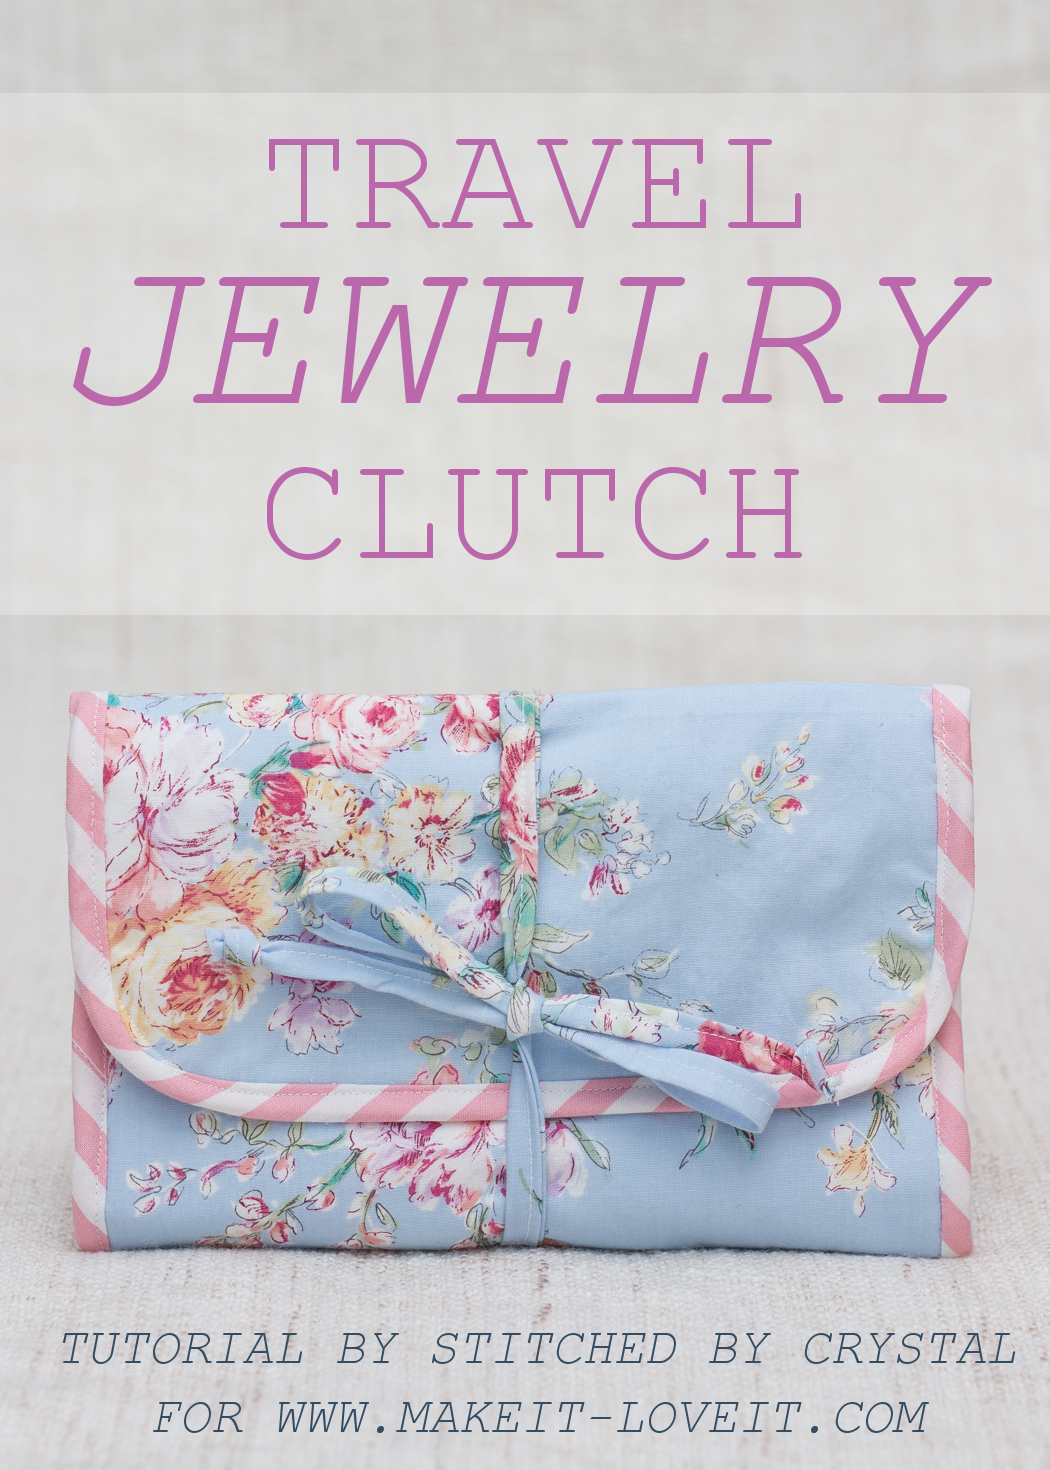 Travel Jewelry Clutch Tutorial....no more tangled or lost jewelry! | via www.makeit-loveit.com